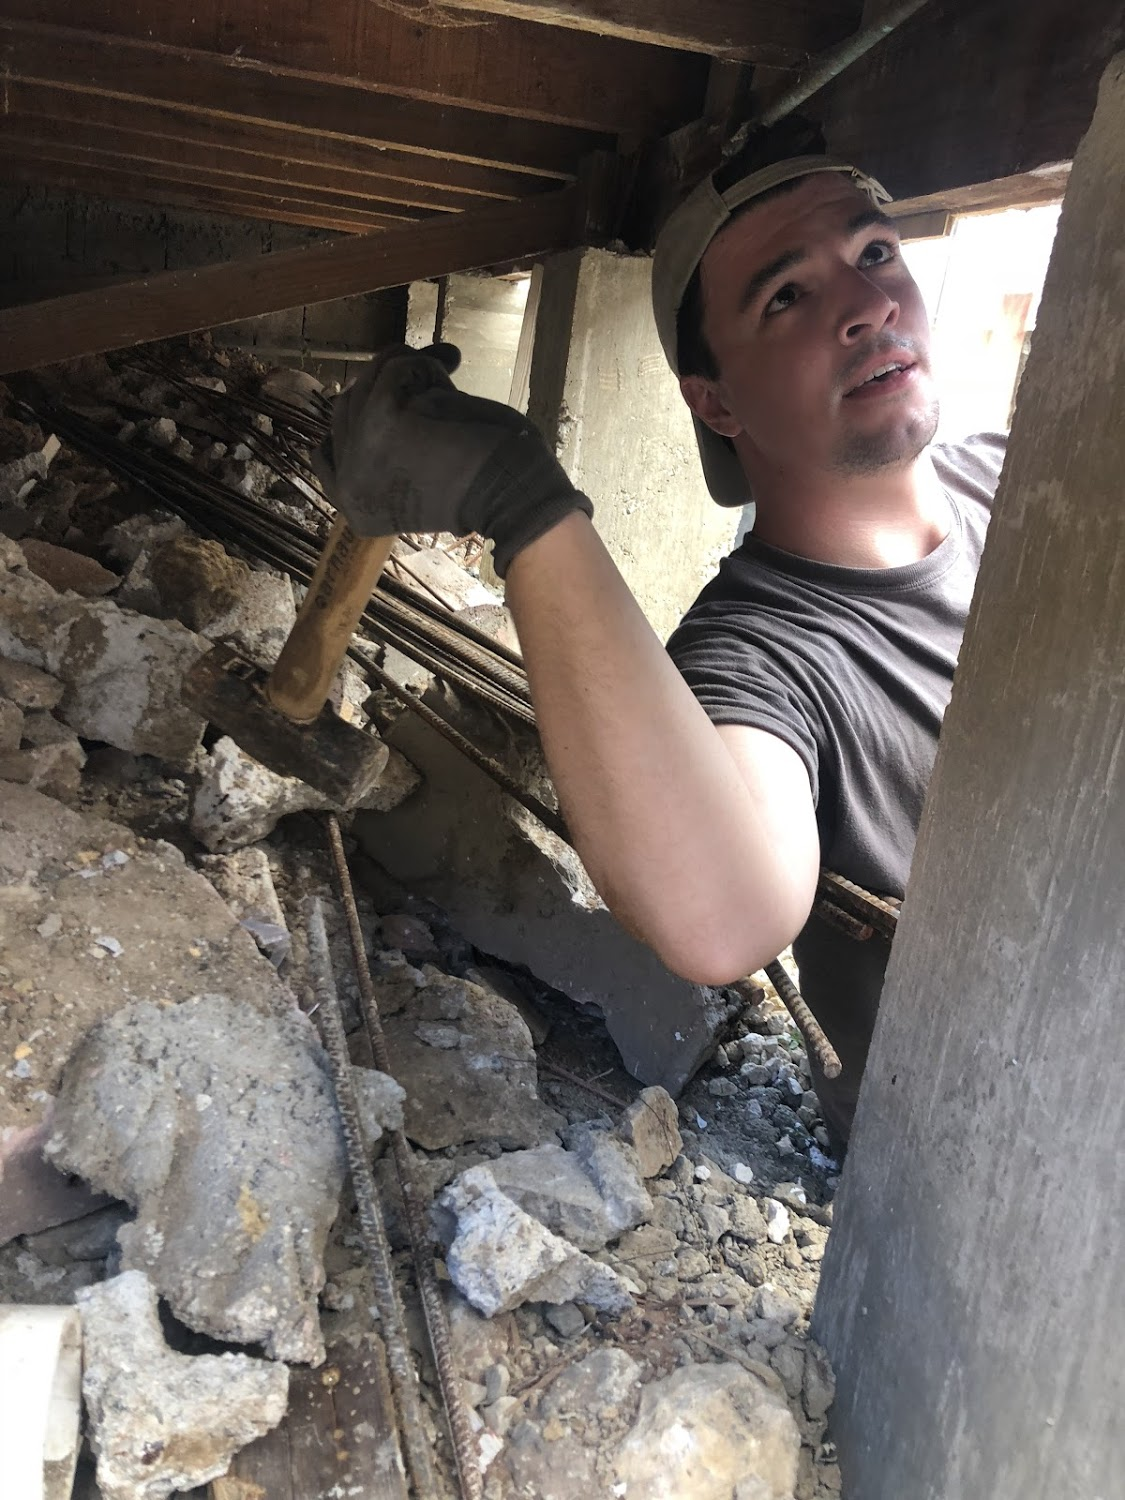 Josh Ellis takes a hammer to the under side of the house he was working on